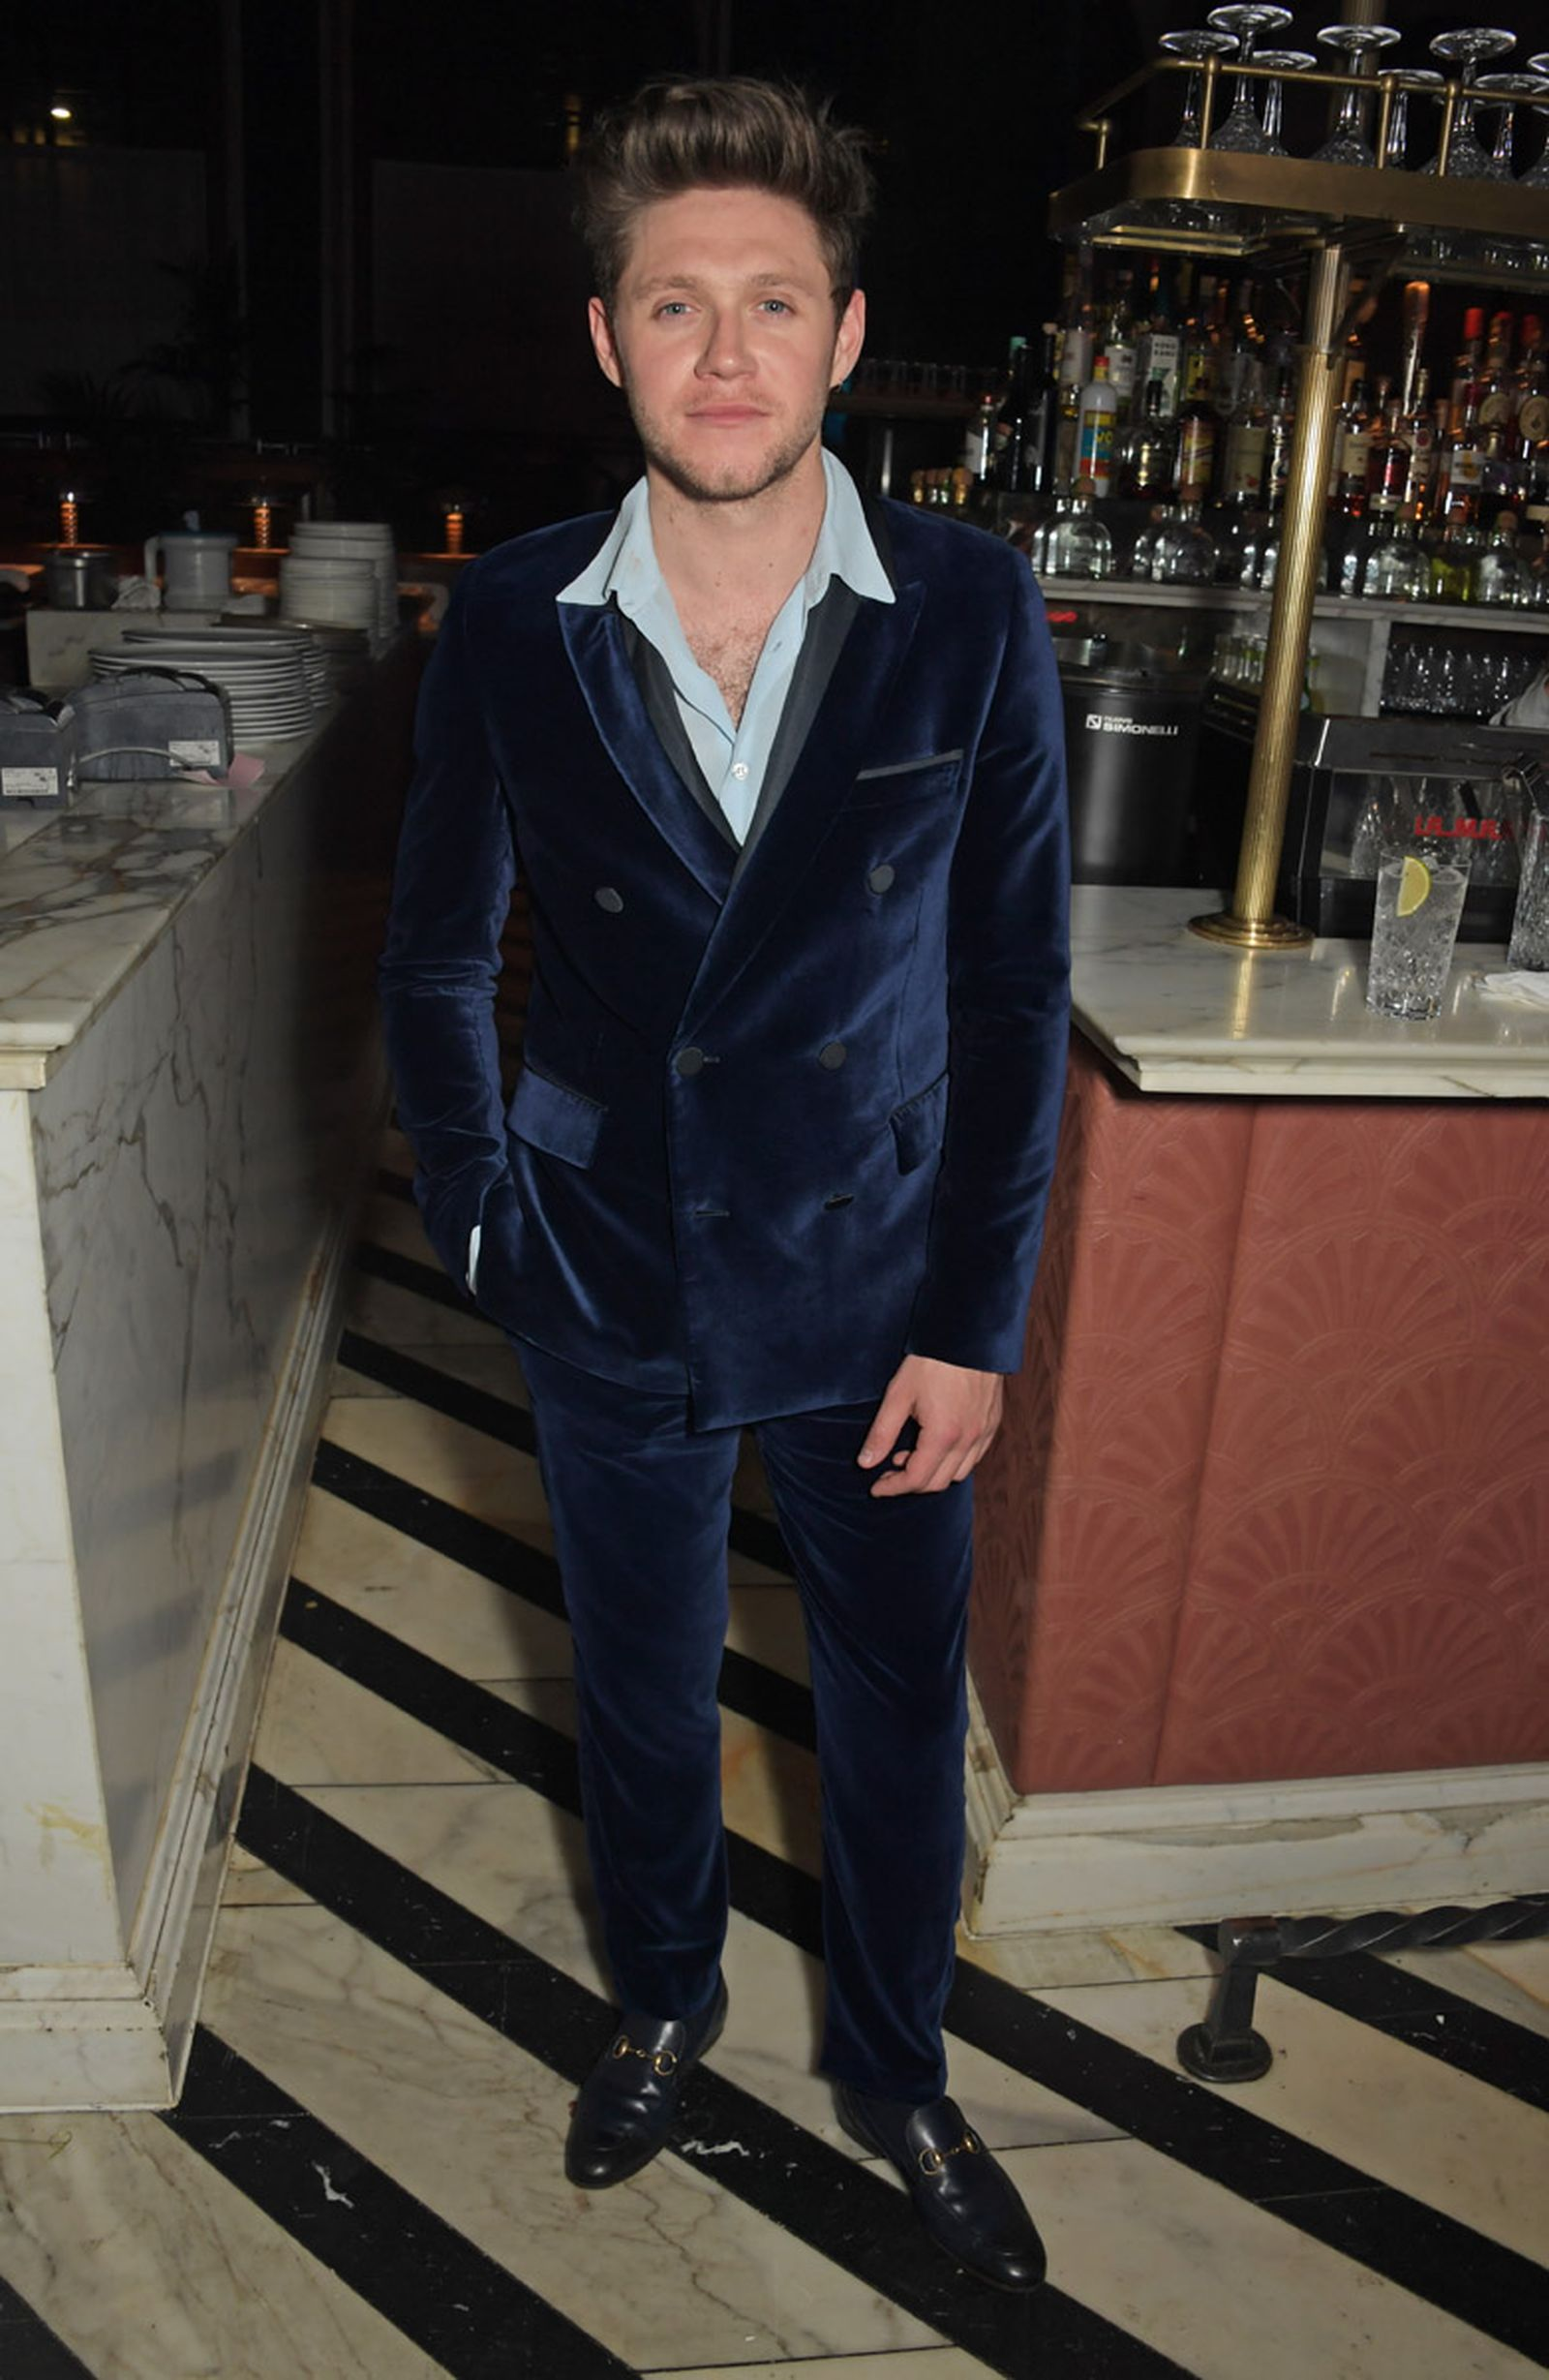 LONDON, ENGLAND - FEBRUARY 18:   Niall Horan attends the Universal Music BRIT Awards after-party 2020 hosted by Soho House & PATRON at The Ned on February 18, 2020 in London, England.  (Photo by David M. Benett/Dave Benett/Getty Images for Universal Music & Soho House)